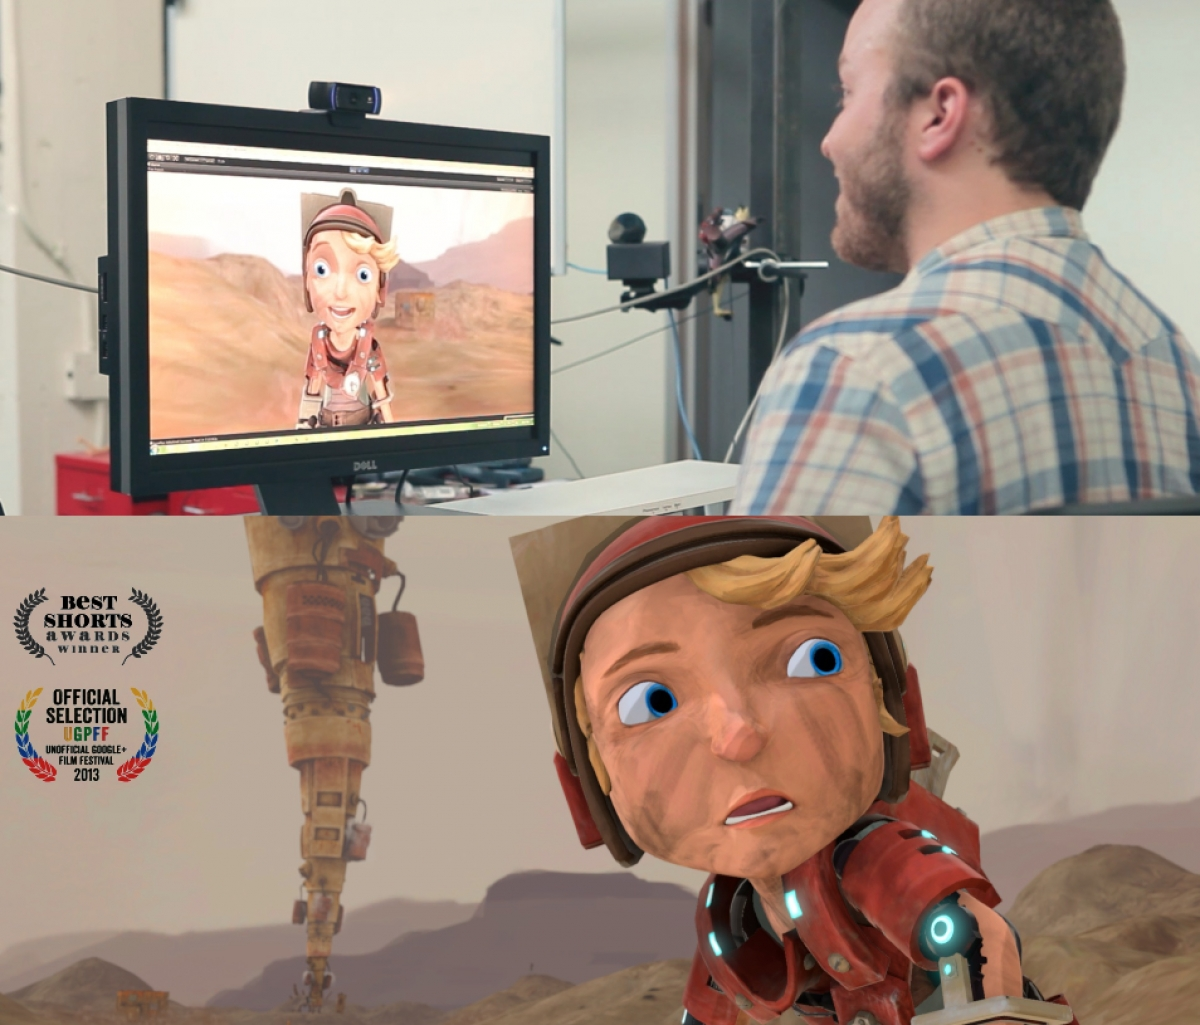 Real-Time Animation of Cartoon Character Faces © 2014 Emiliano Gambaretto, Charles Piña, Mixamo, Inc.